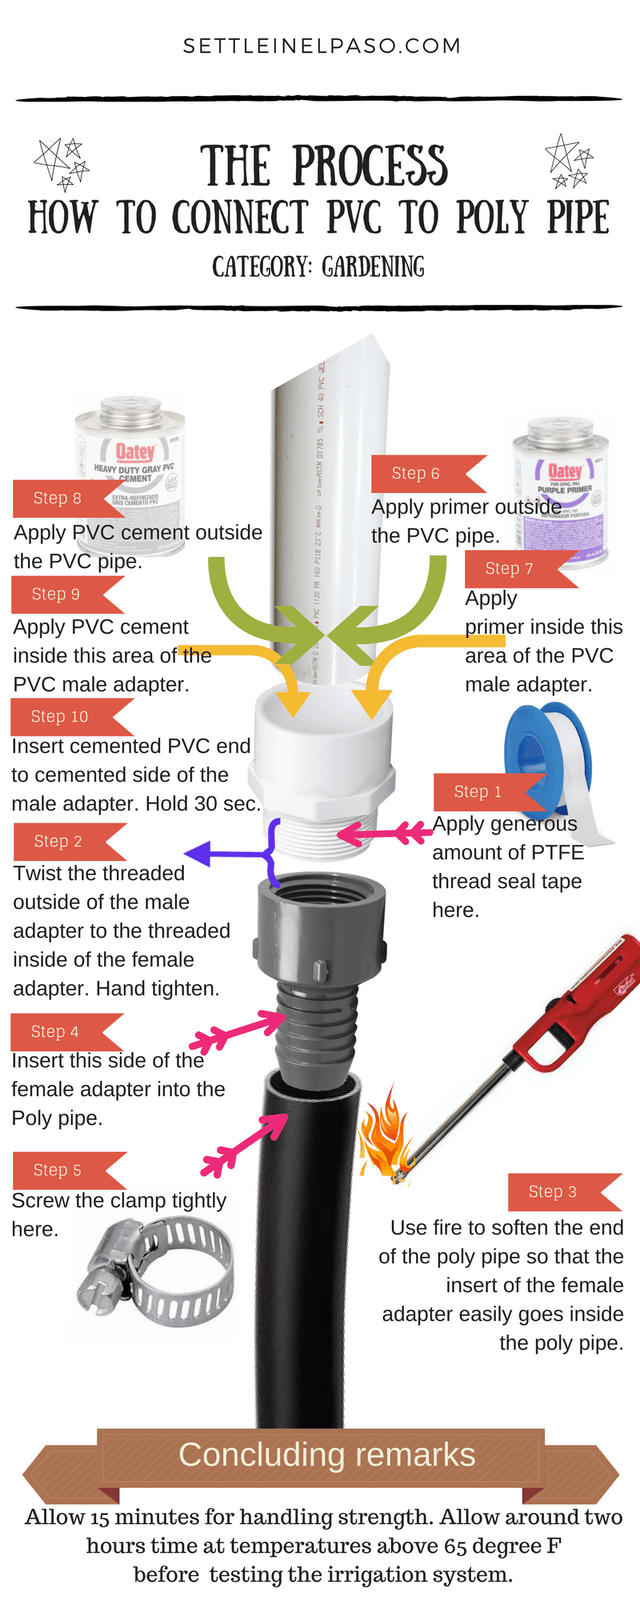 How to connect PVC to Poly pipe u2014 Settle in El Paso  sc 1 st  Pinterest & How to connect PVC to Poly pipe | DIY Blog - Group Board | Pinterest ...